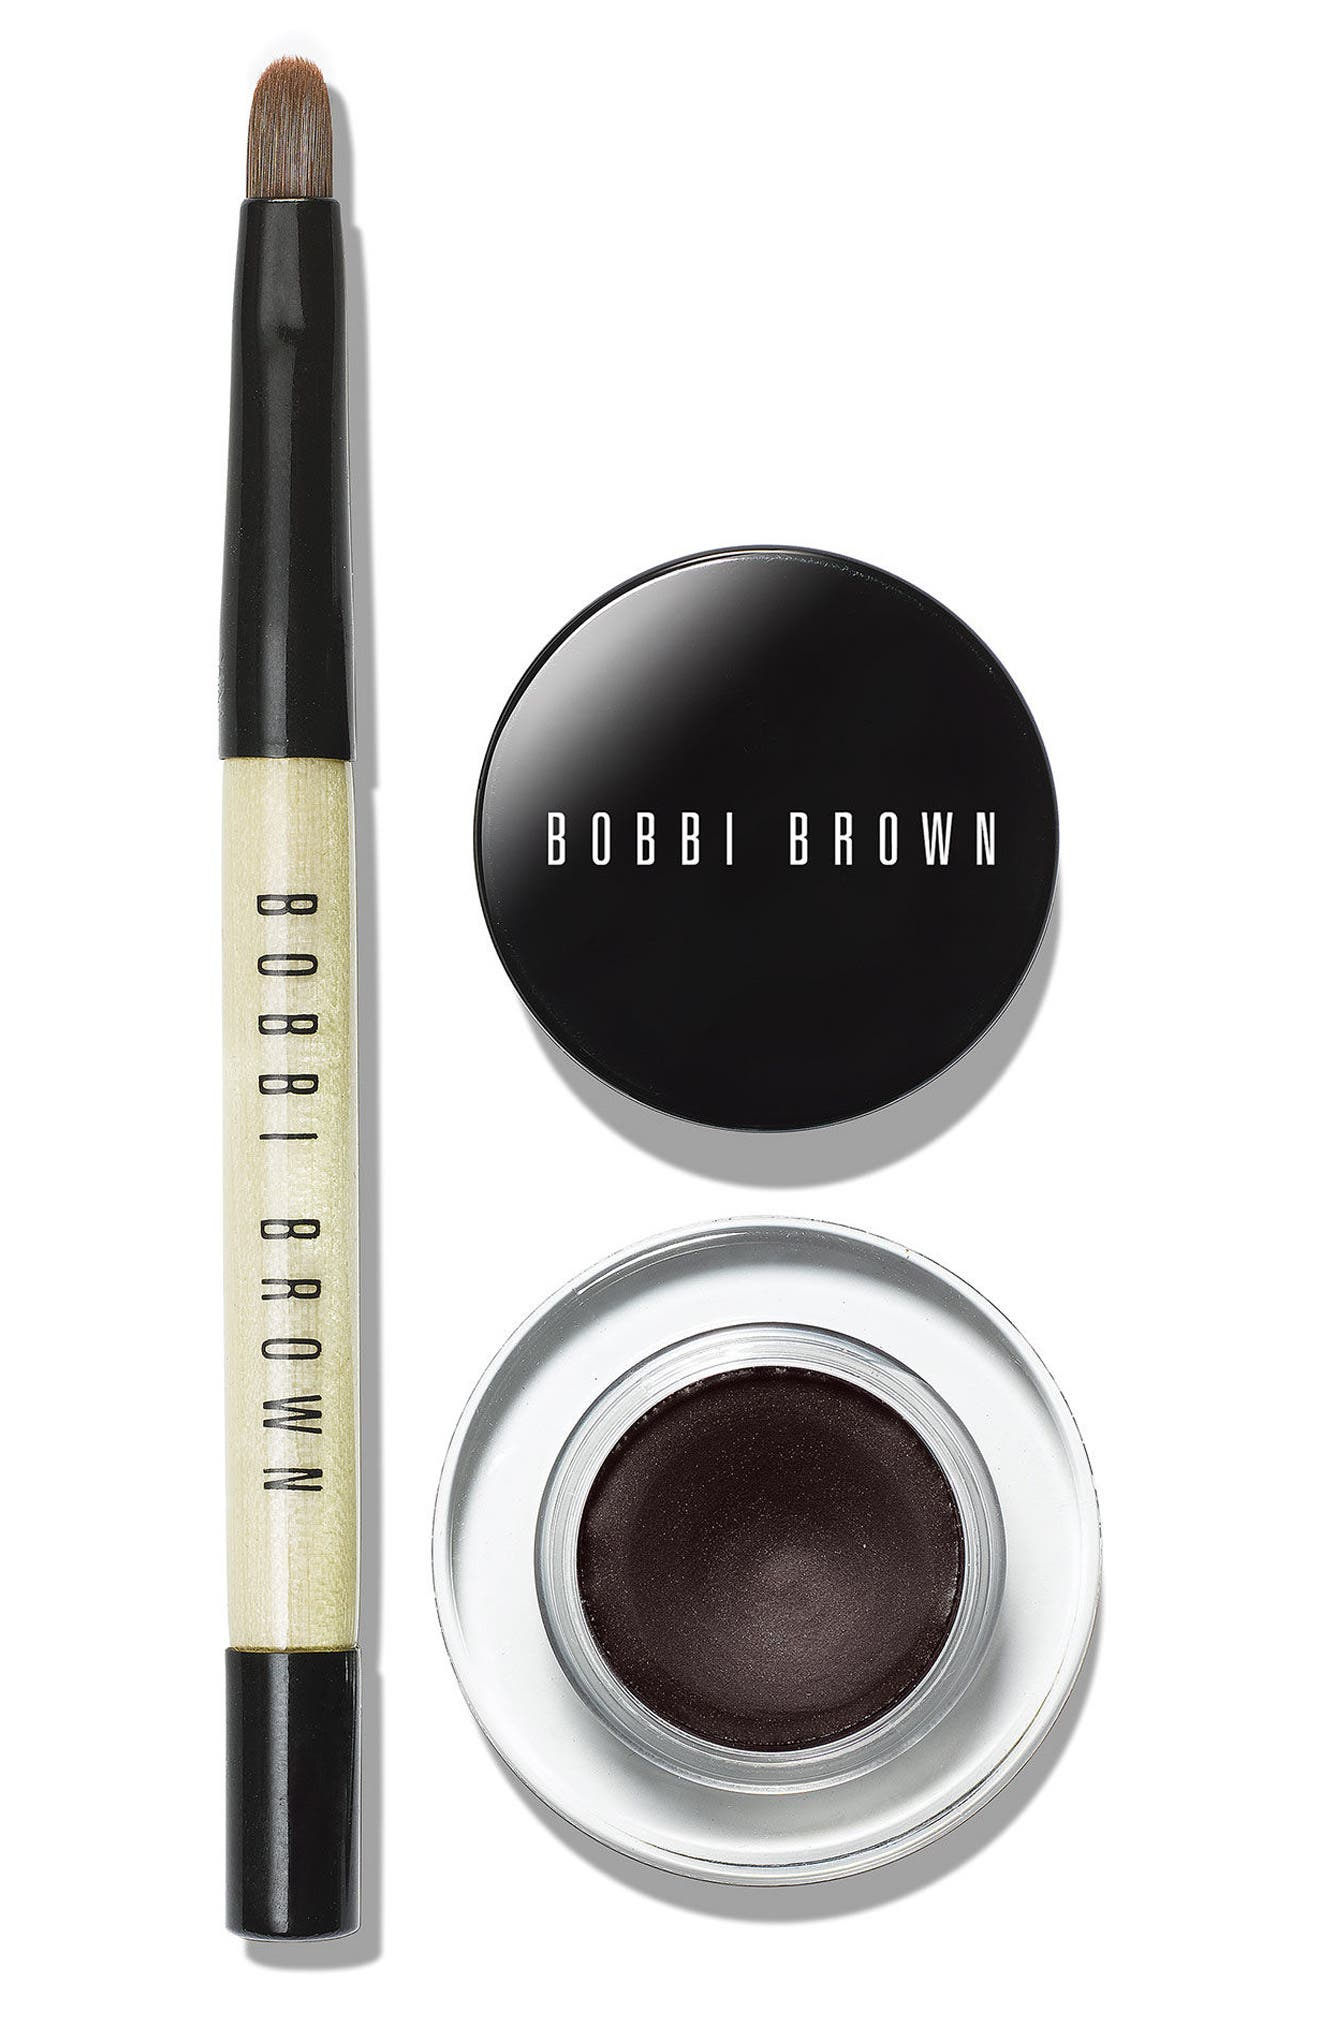 Alternate Image 1 Selected - Bobbi Brown Bobbi to Go Mini Long-Wear Gel Eyeliner Duo ($27 Value)